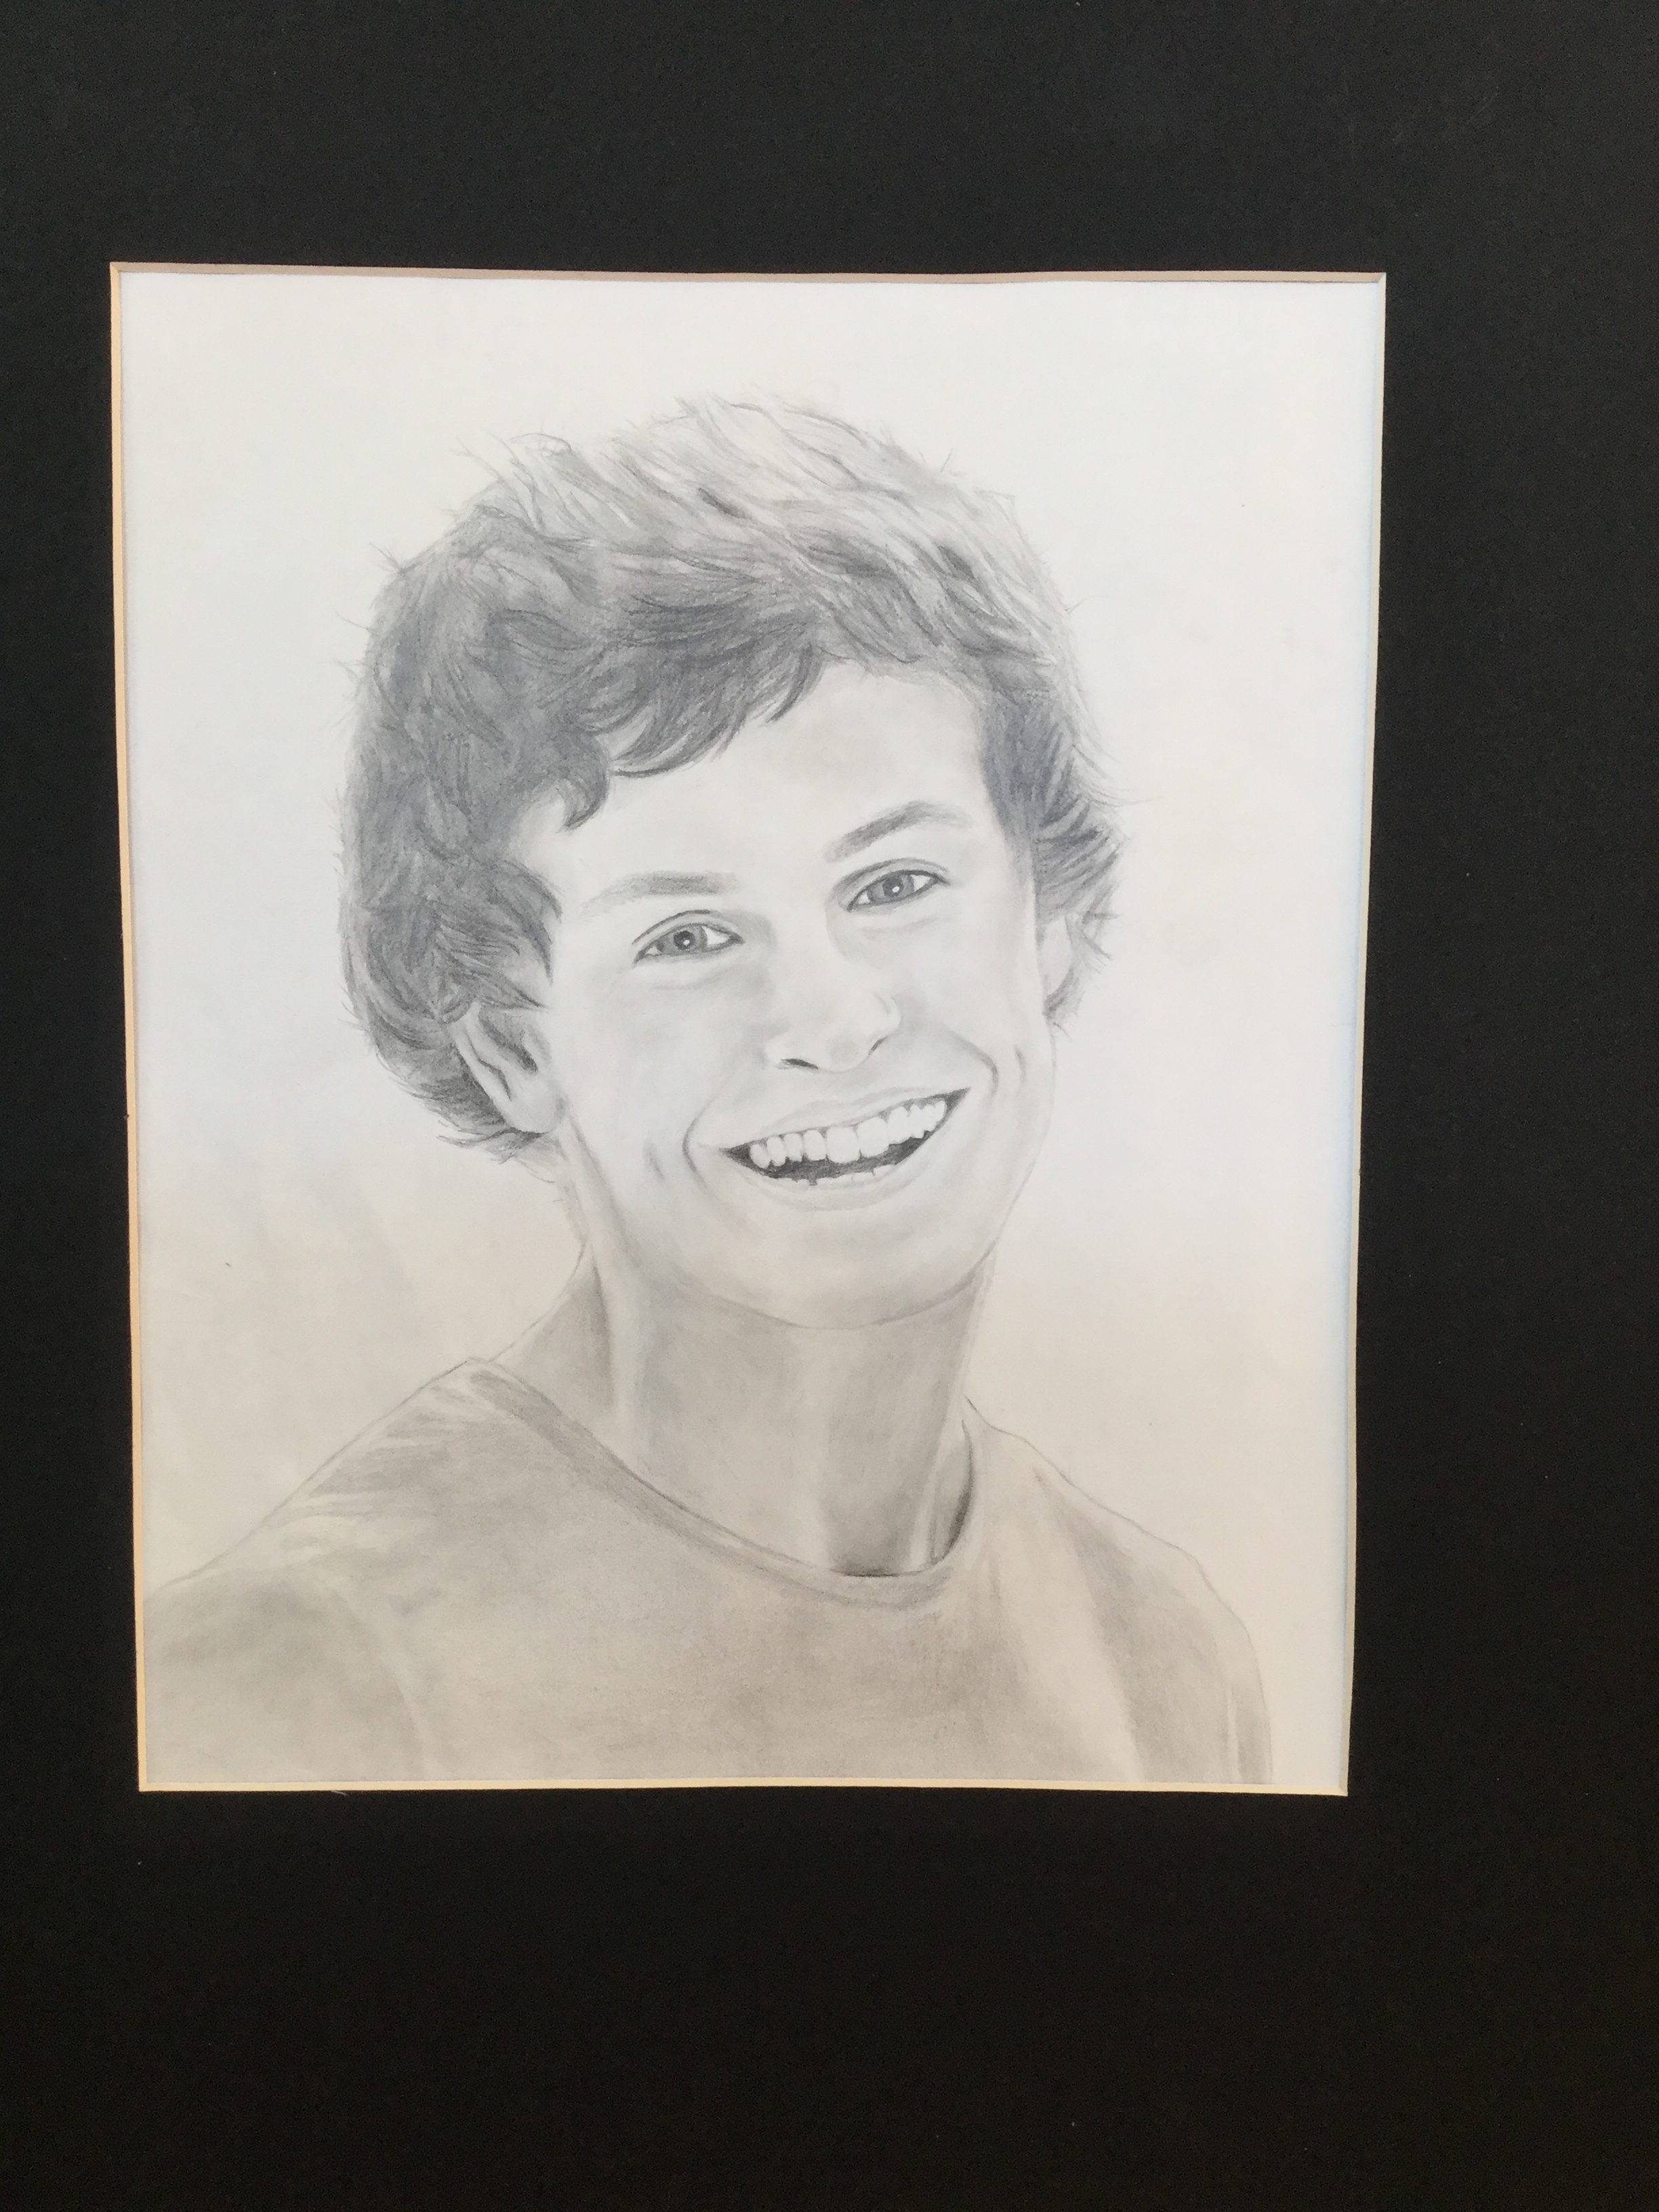 Rode Eide's Pencil Drawing